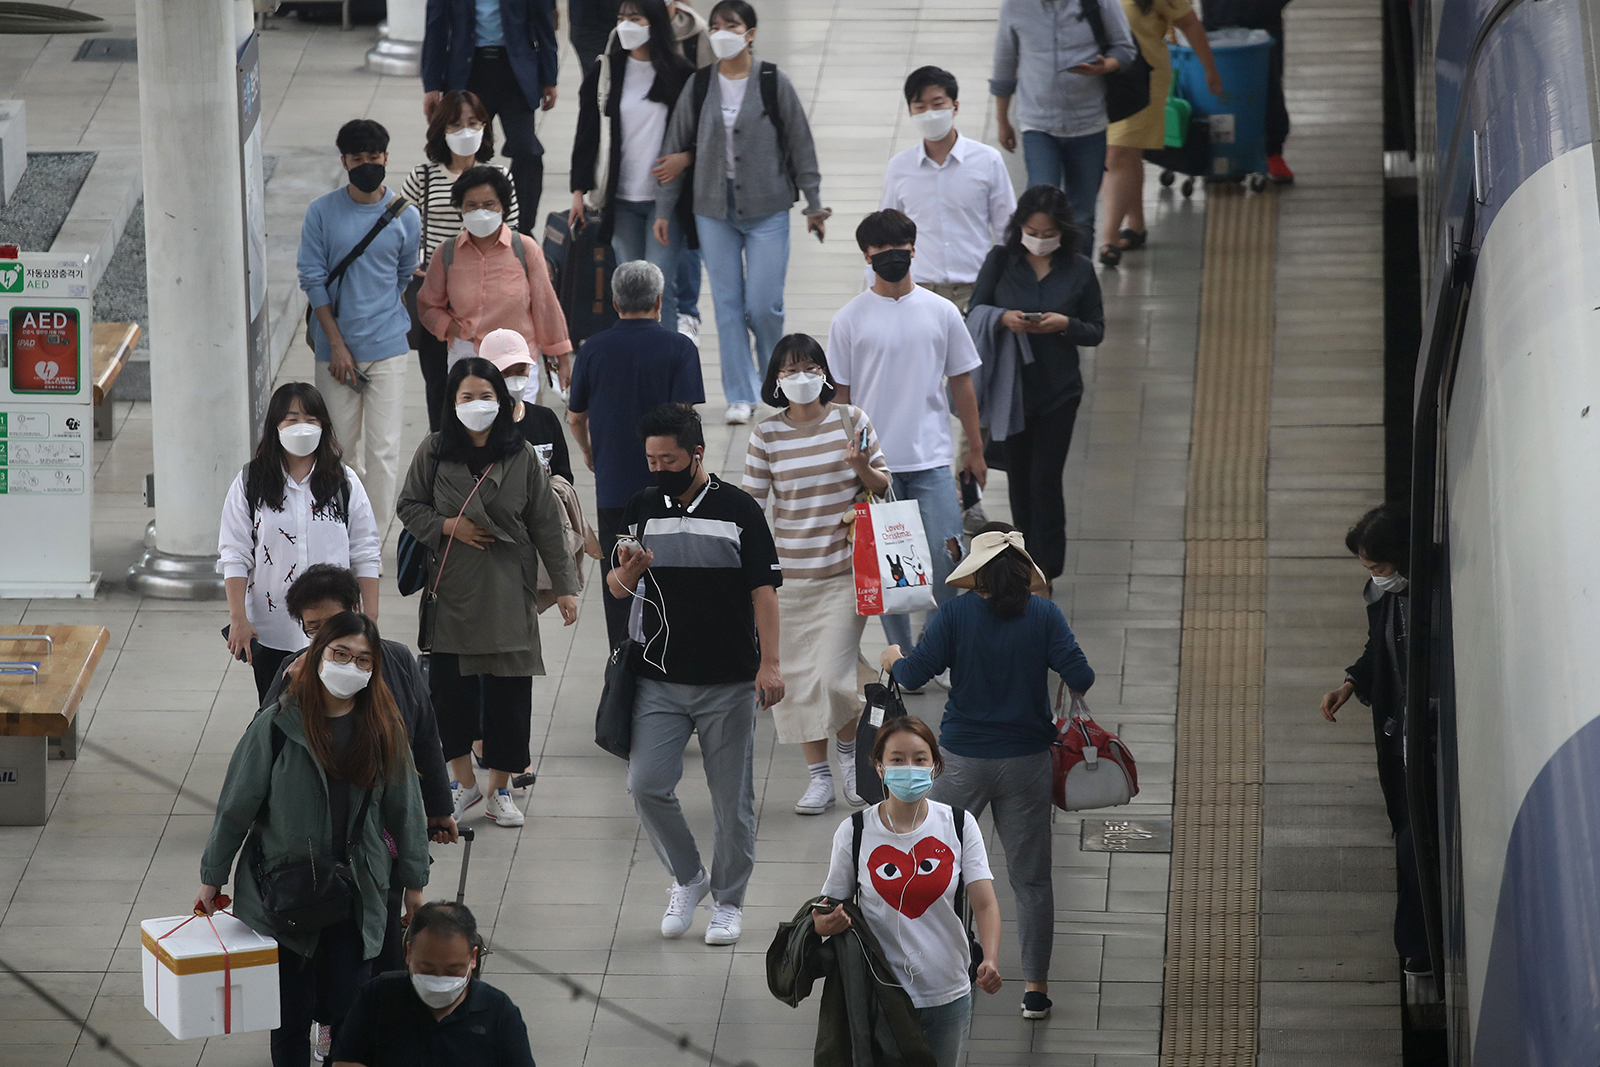 People gather after getting off the train at the Seoul railway station in Seoul, South Korea, on September 29.